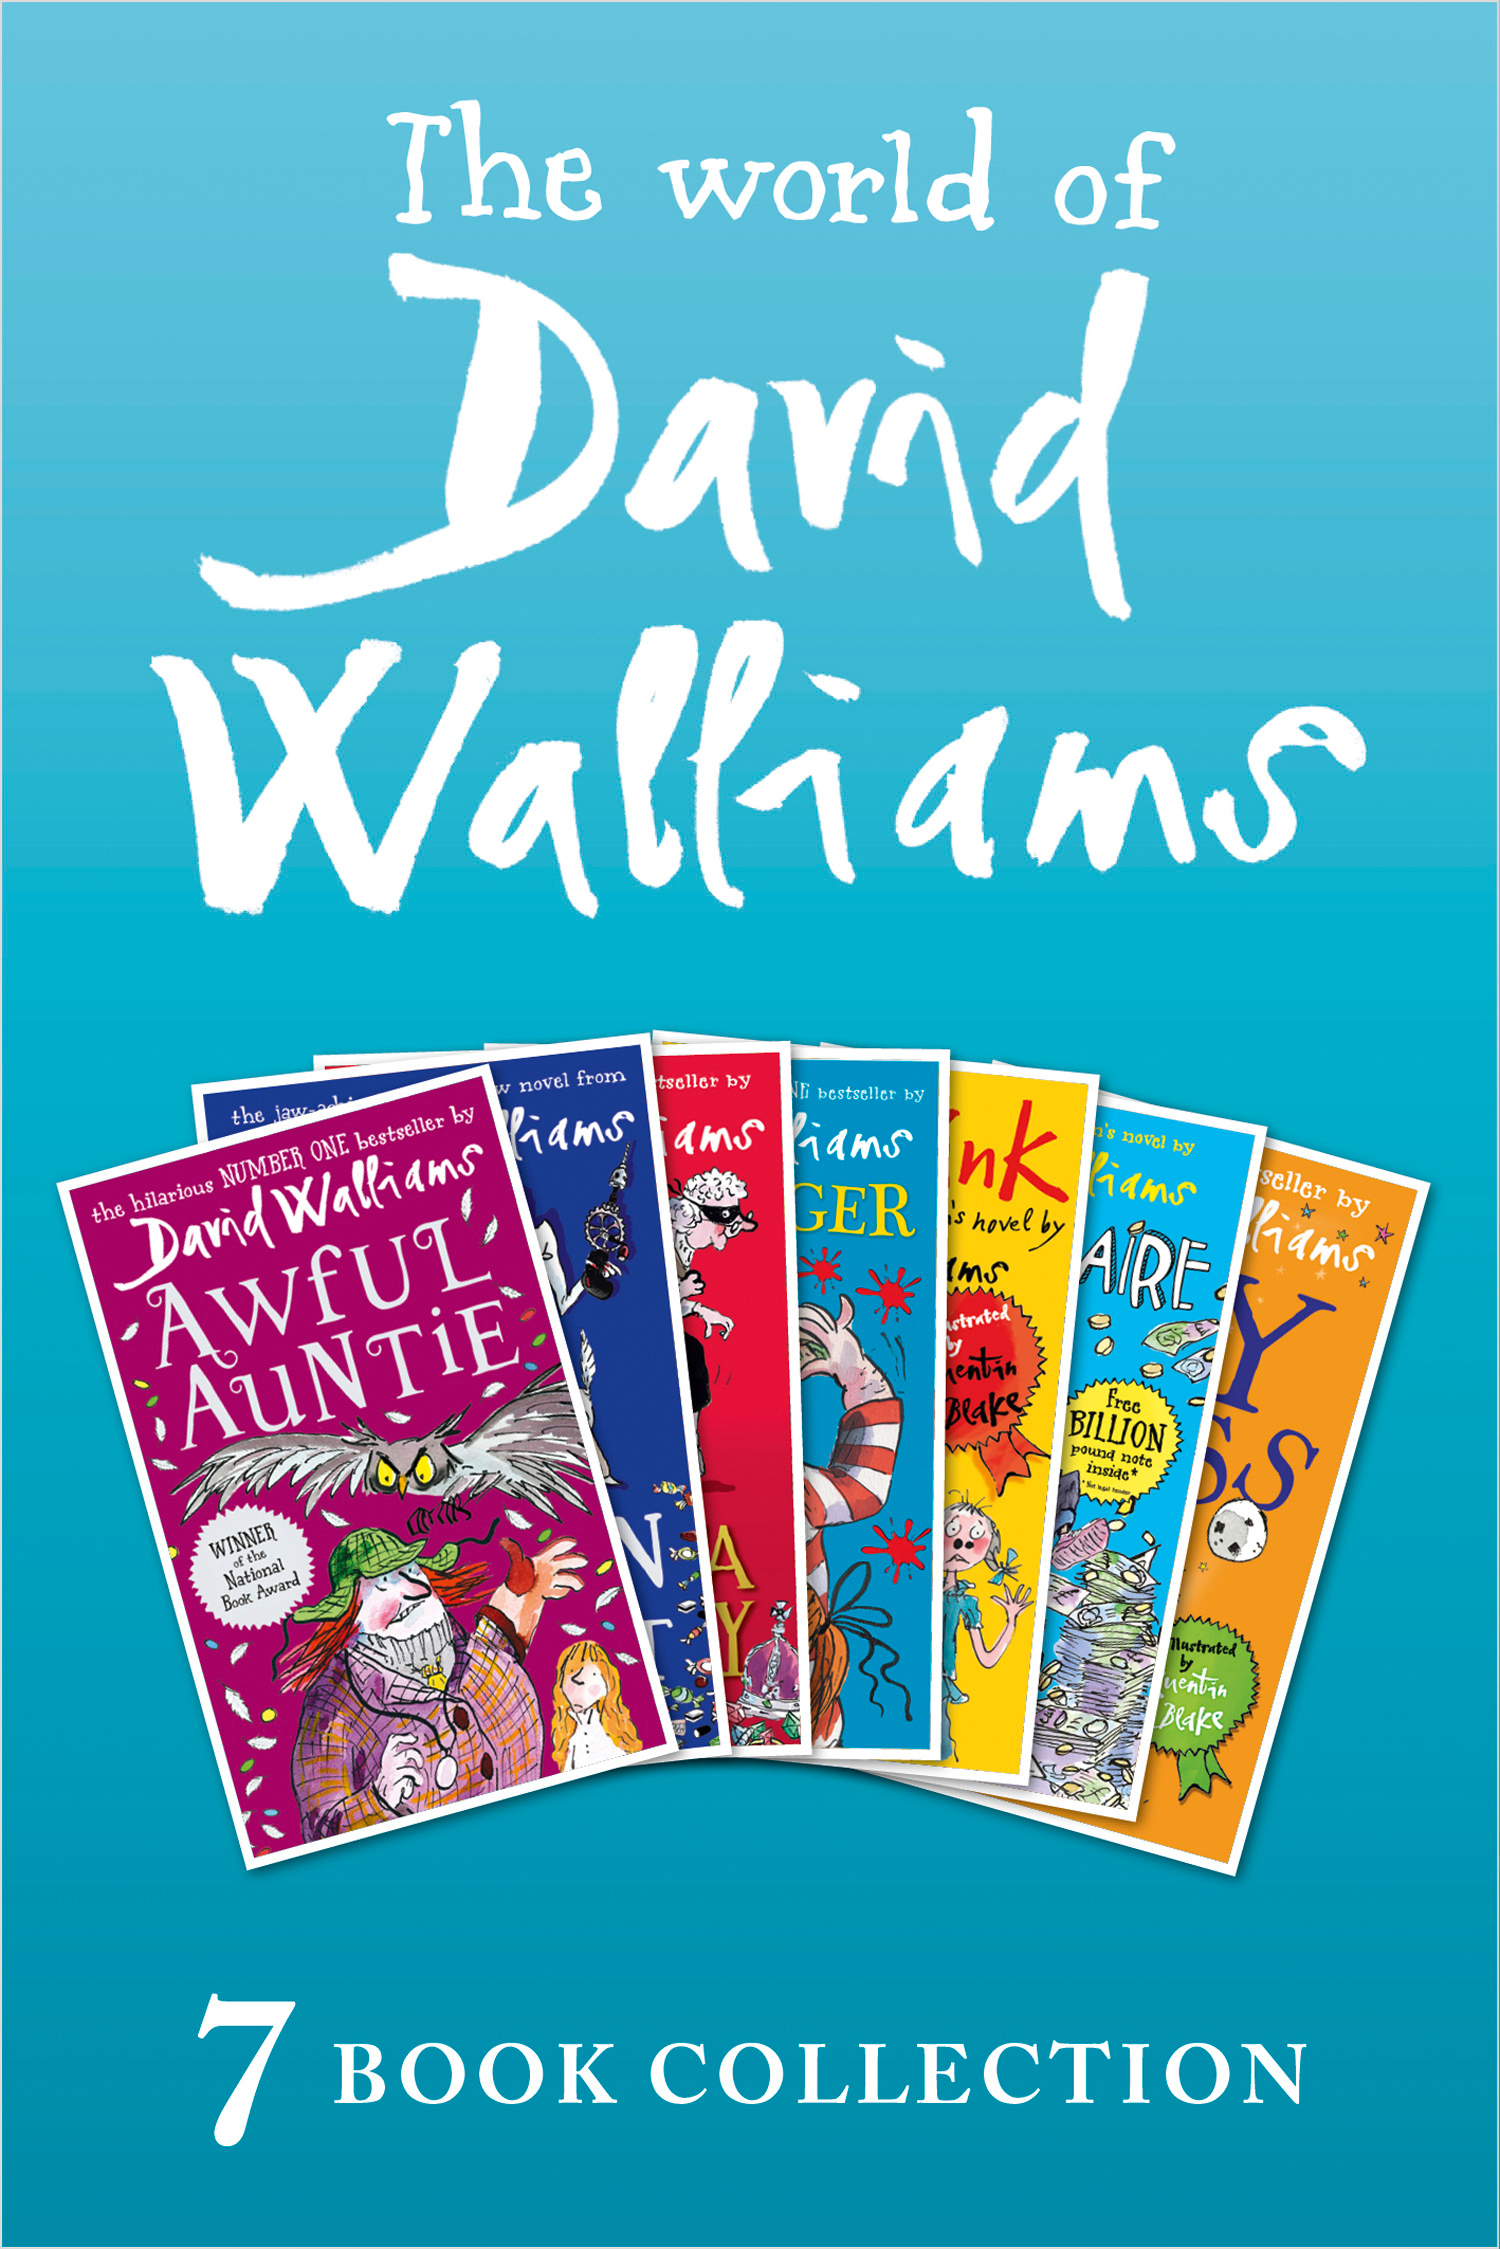 The World of David Walliams: 7 Book Collection (The Boy in the Dress, Mr Stink, Billionaire Boy, Gangsta Granny, Ratburger, Demon Dentist, Awful Auntie)